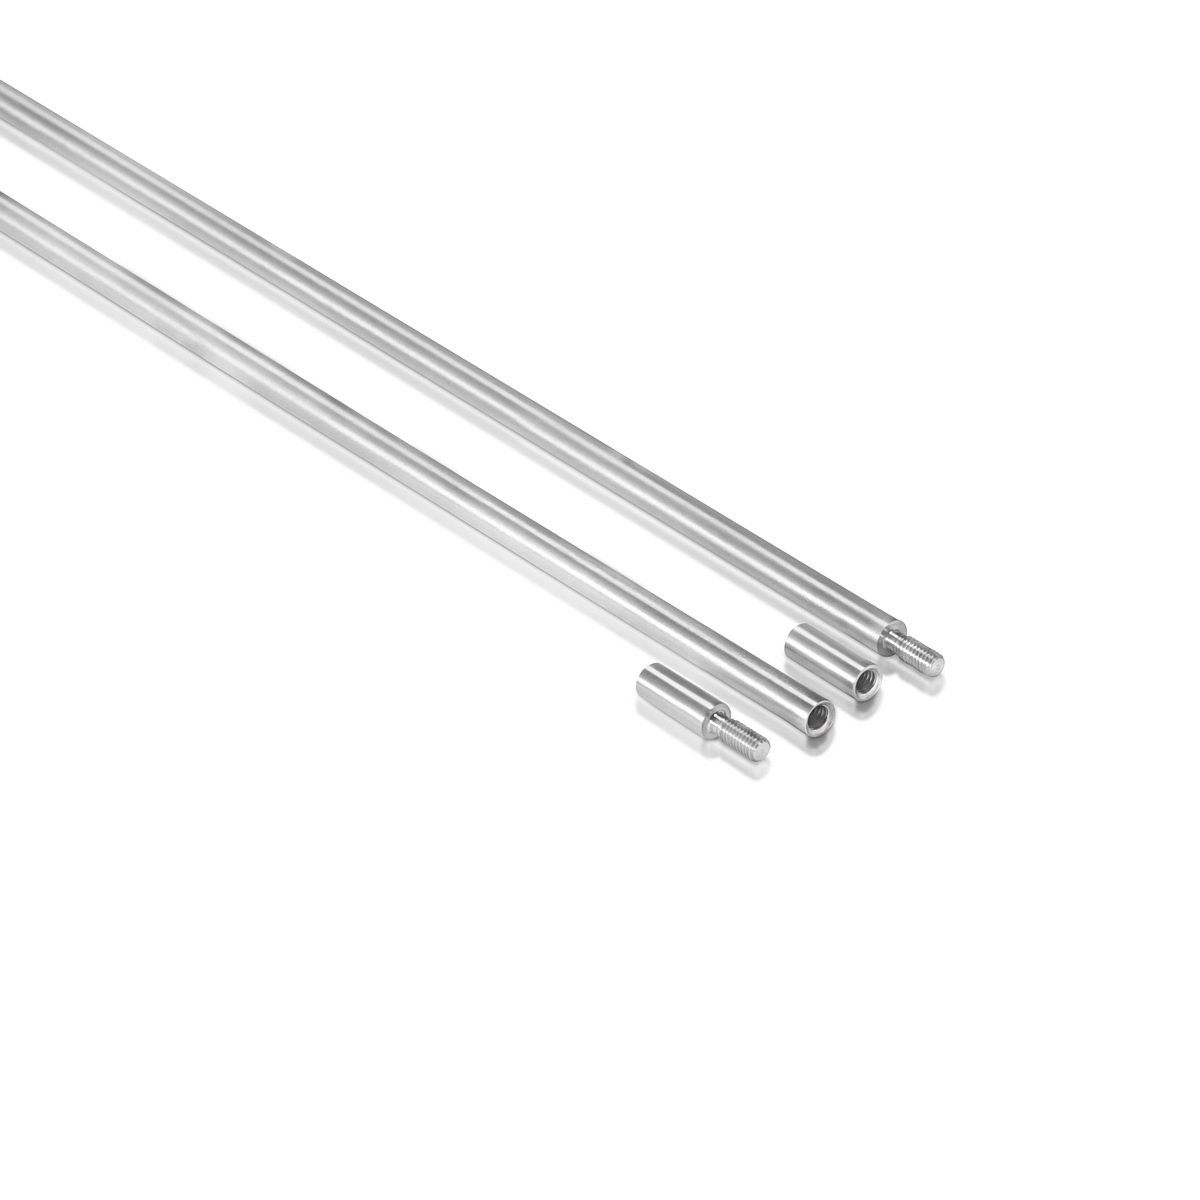 1/4'' Stainless Steel Rod, Length: 36'' (Inside use only)